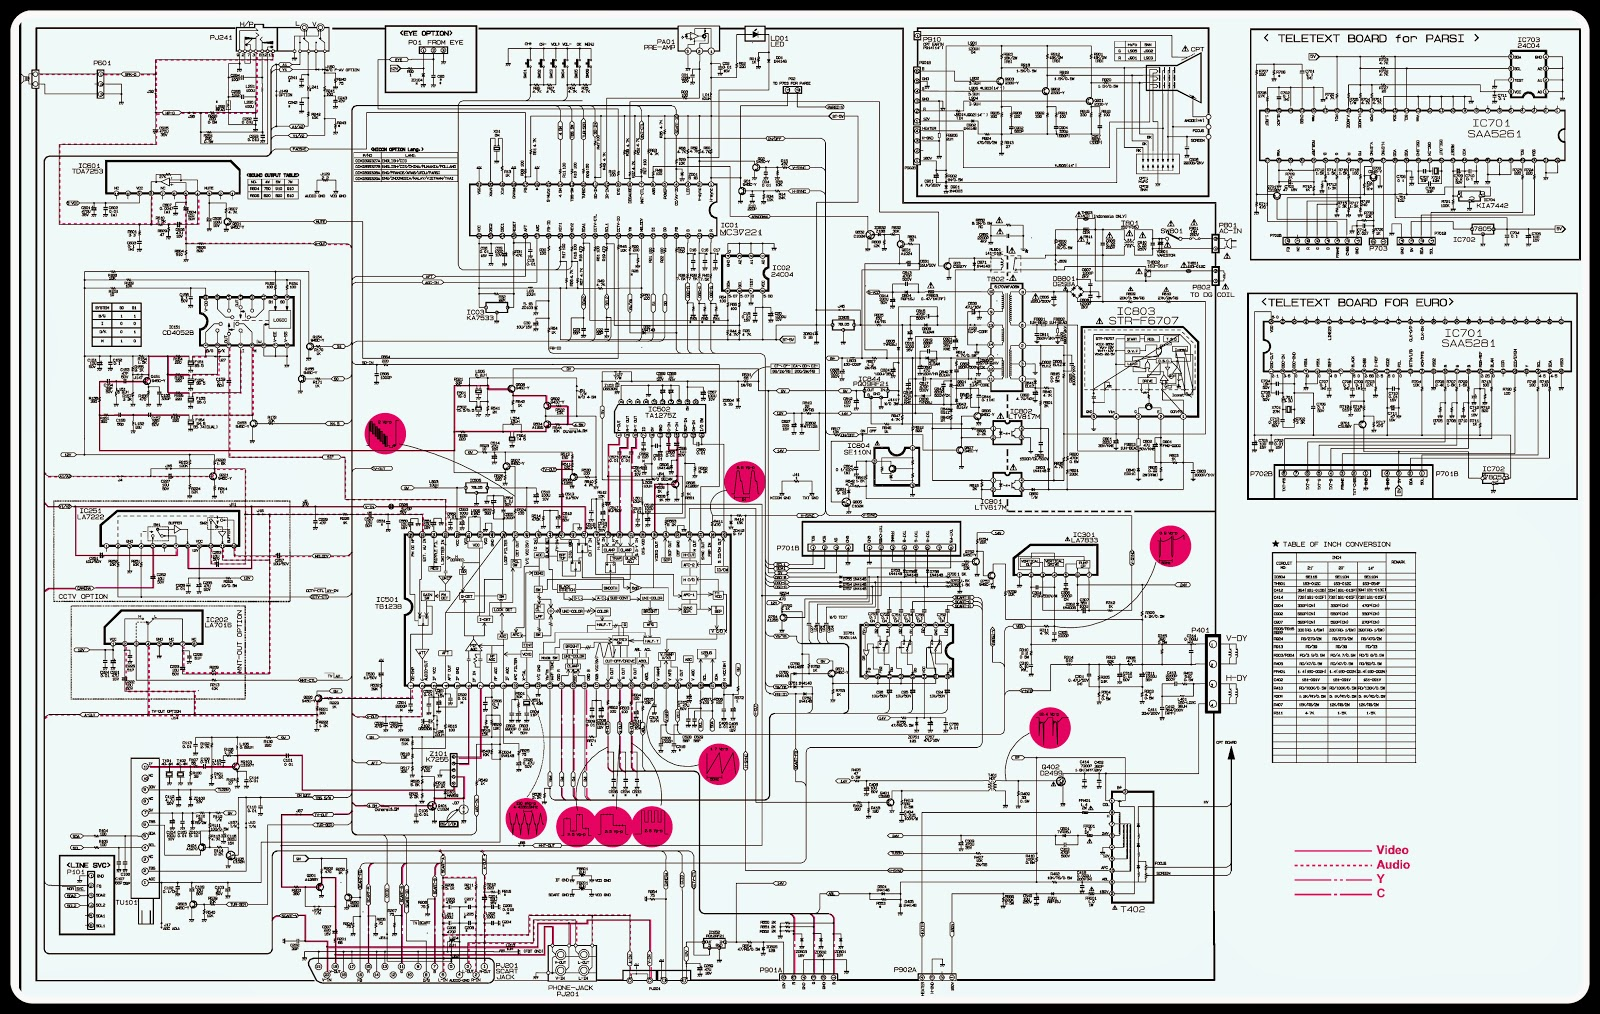 auto schematics samsung lcd tv circuit boards wiring diagram img Samsung TV Hook Up Diagrams